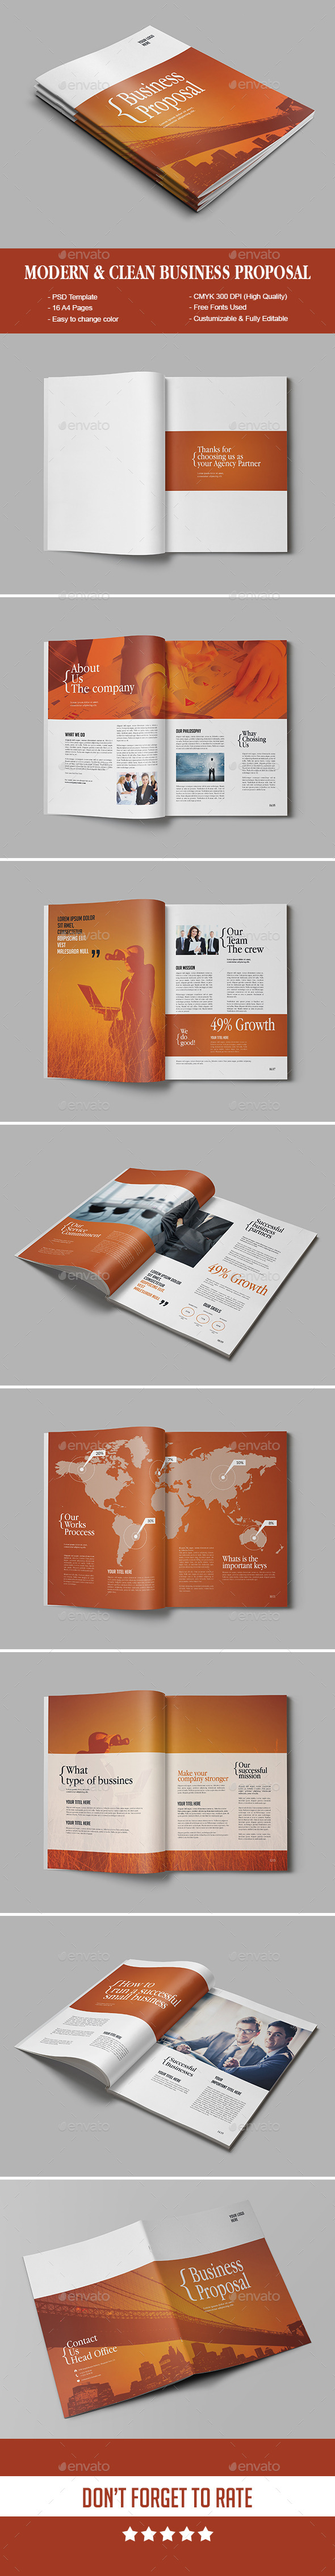 Modern & Clean Business Proposal - Proposals & Invoices Stationery